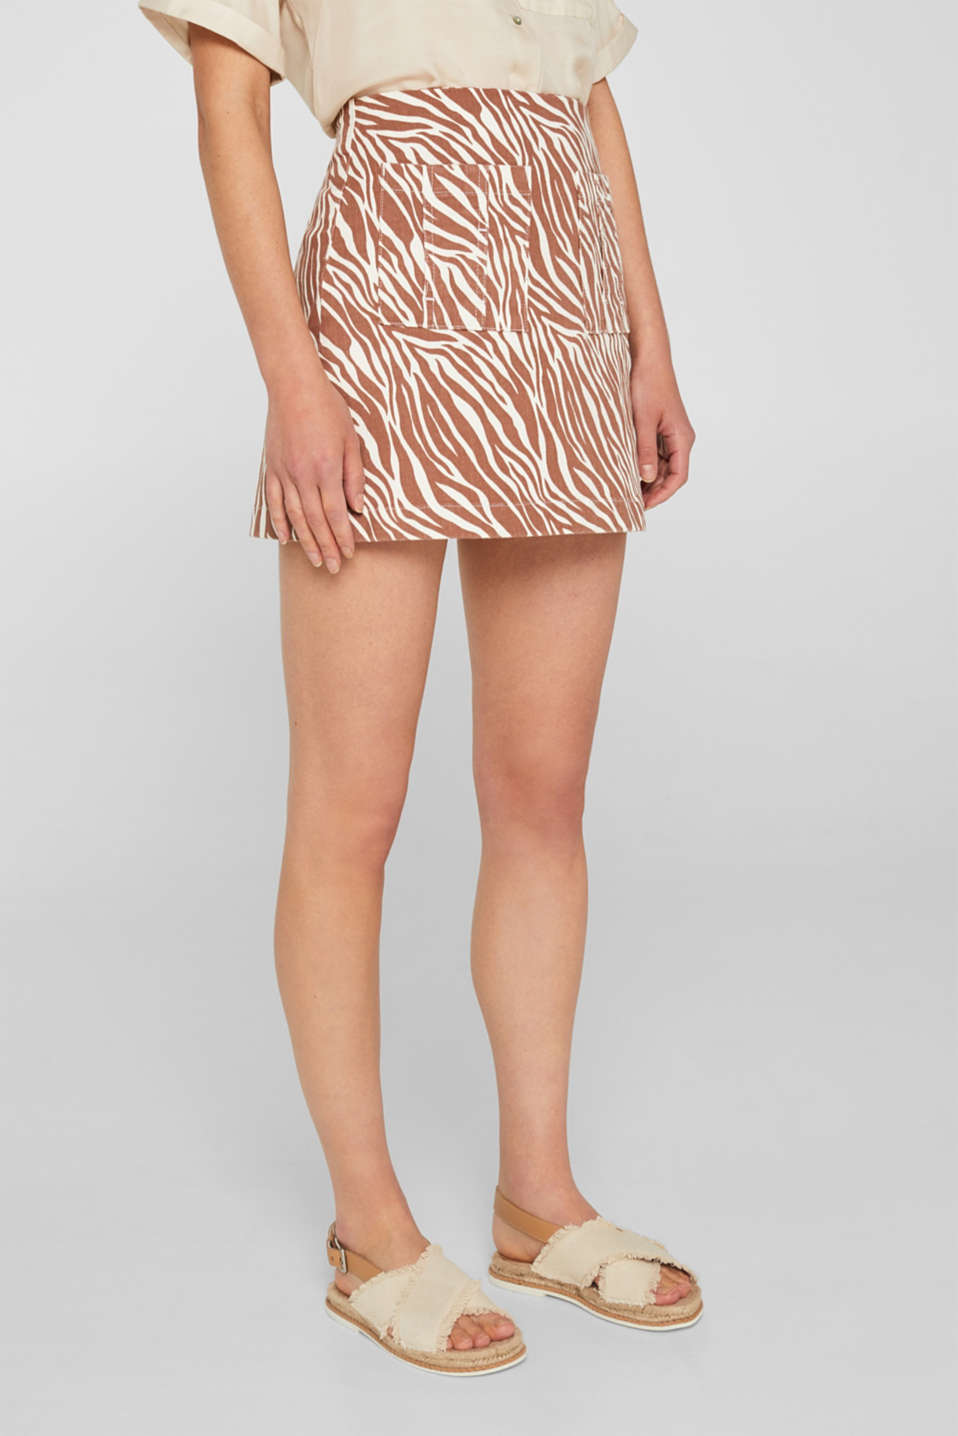 Stretch denim skirt with an animal print, BEIGE, detail image number 6